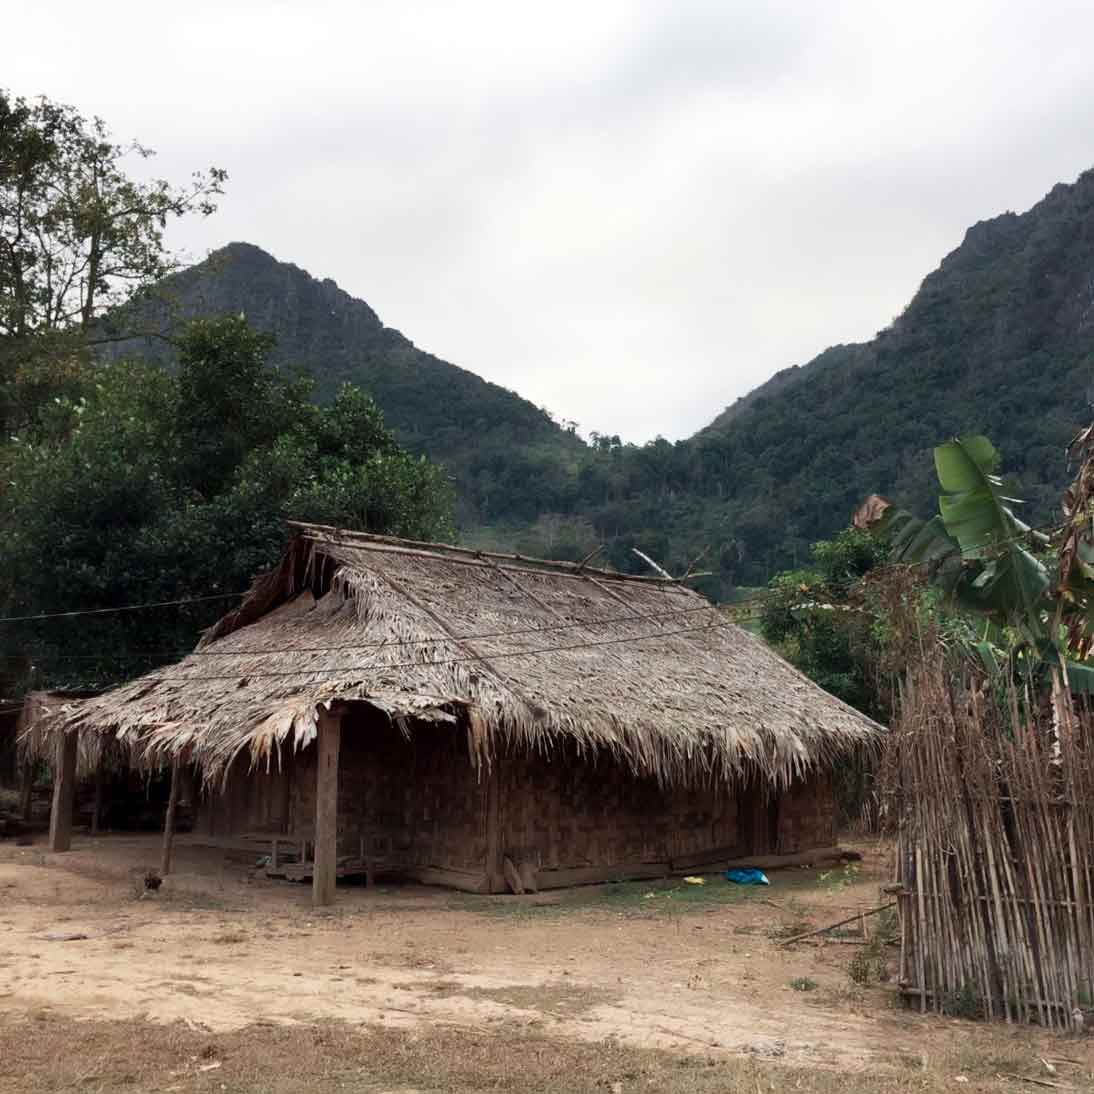 LAOS   AUG. 21, 2020 — New Believer Disinherited by Family